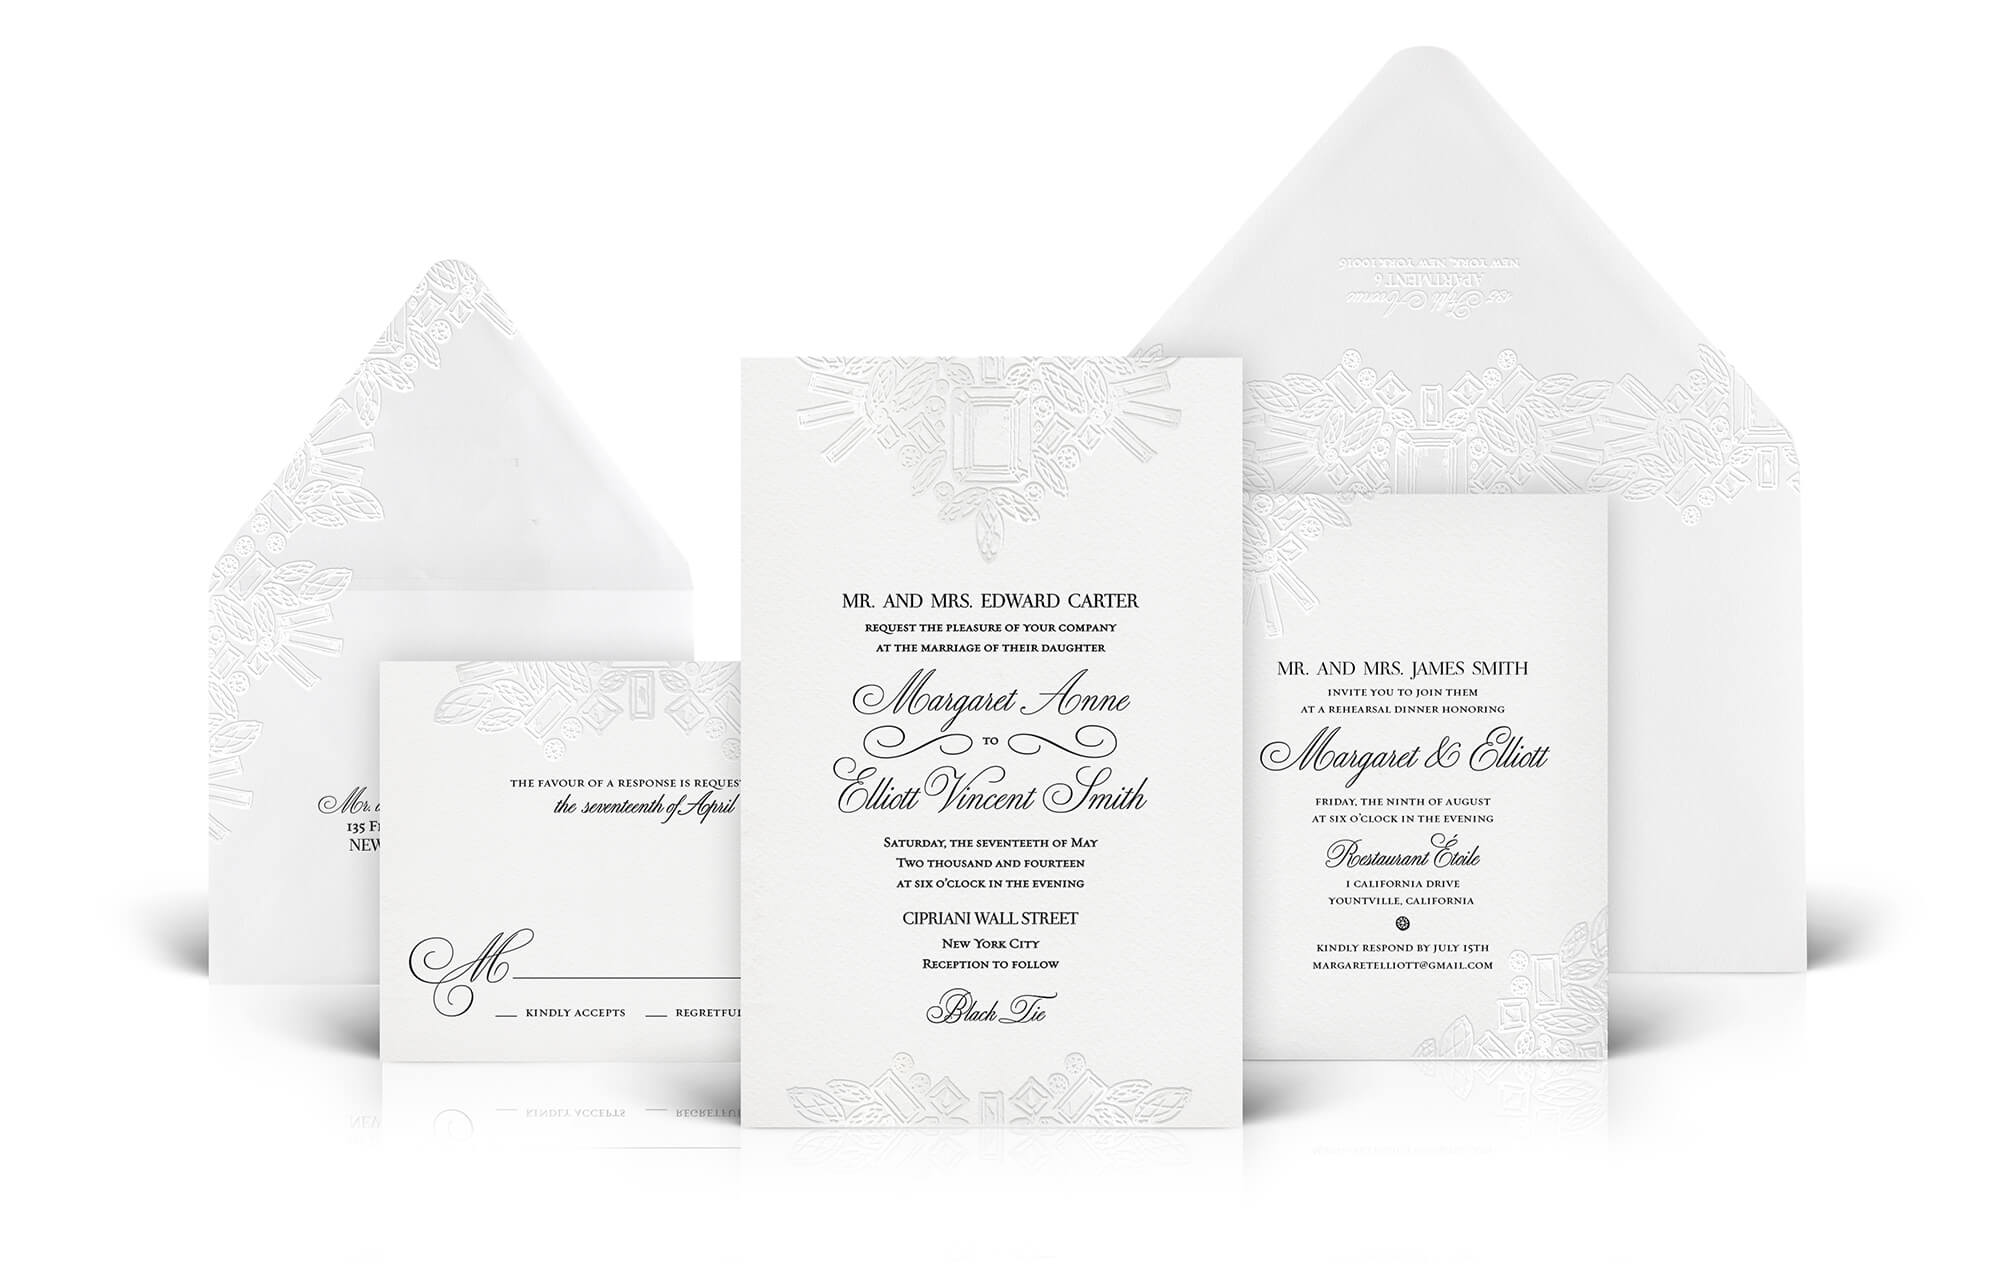 Crystal and jewel inspired wedding invitation